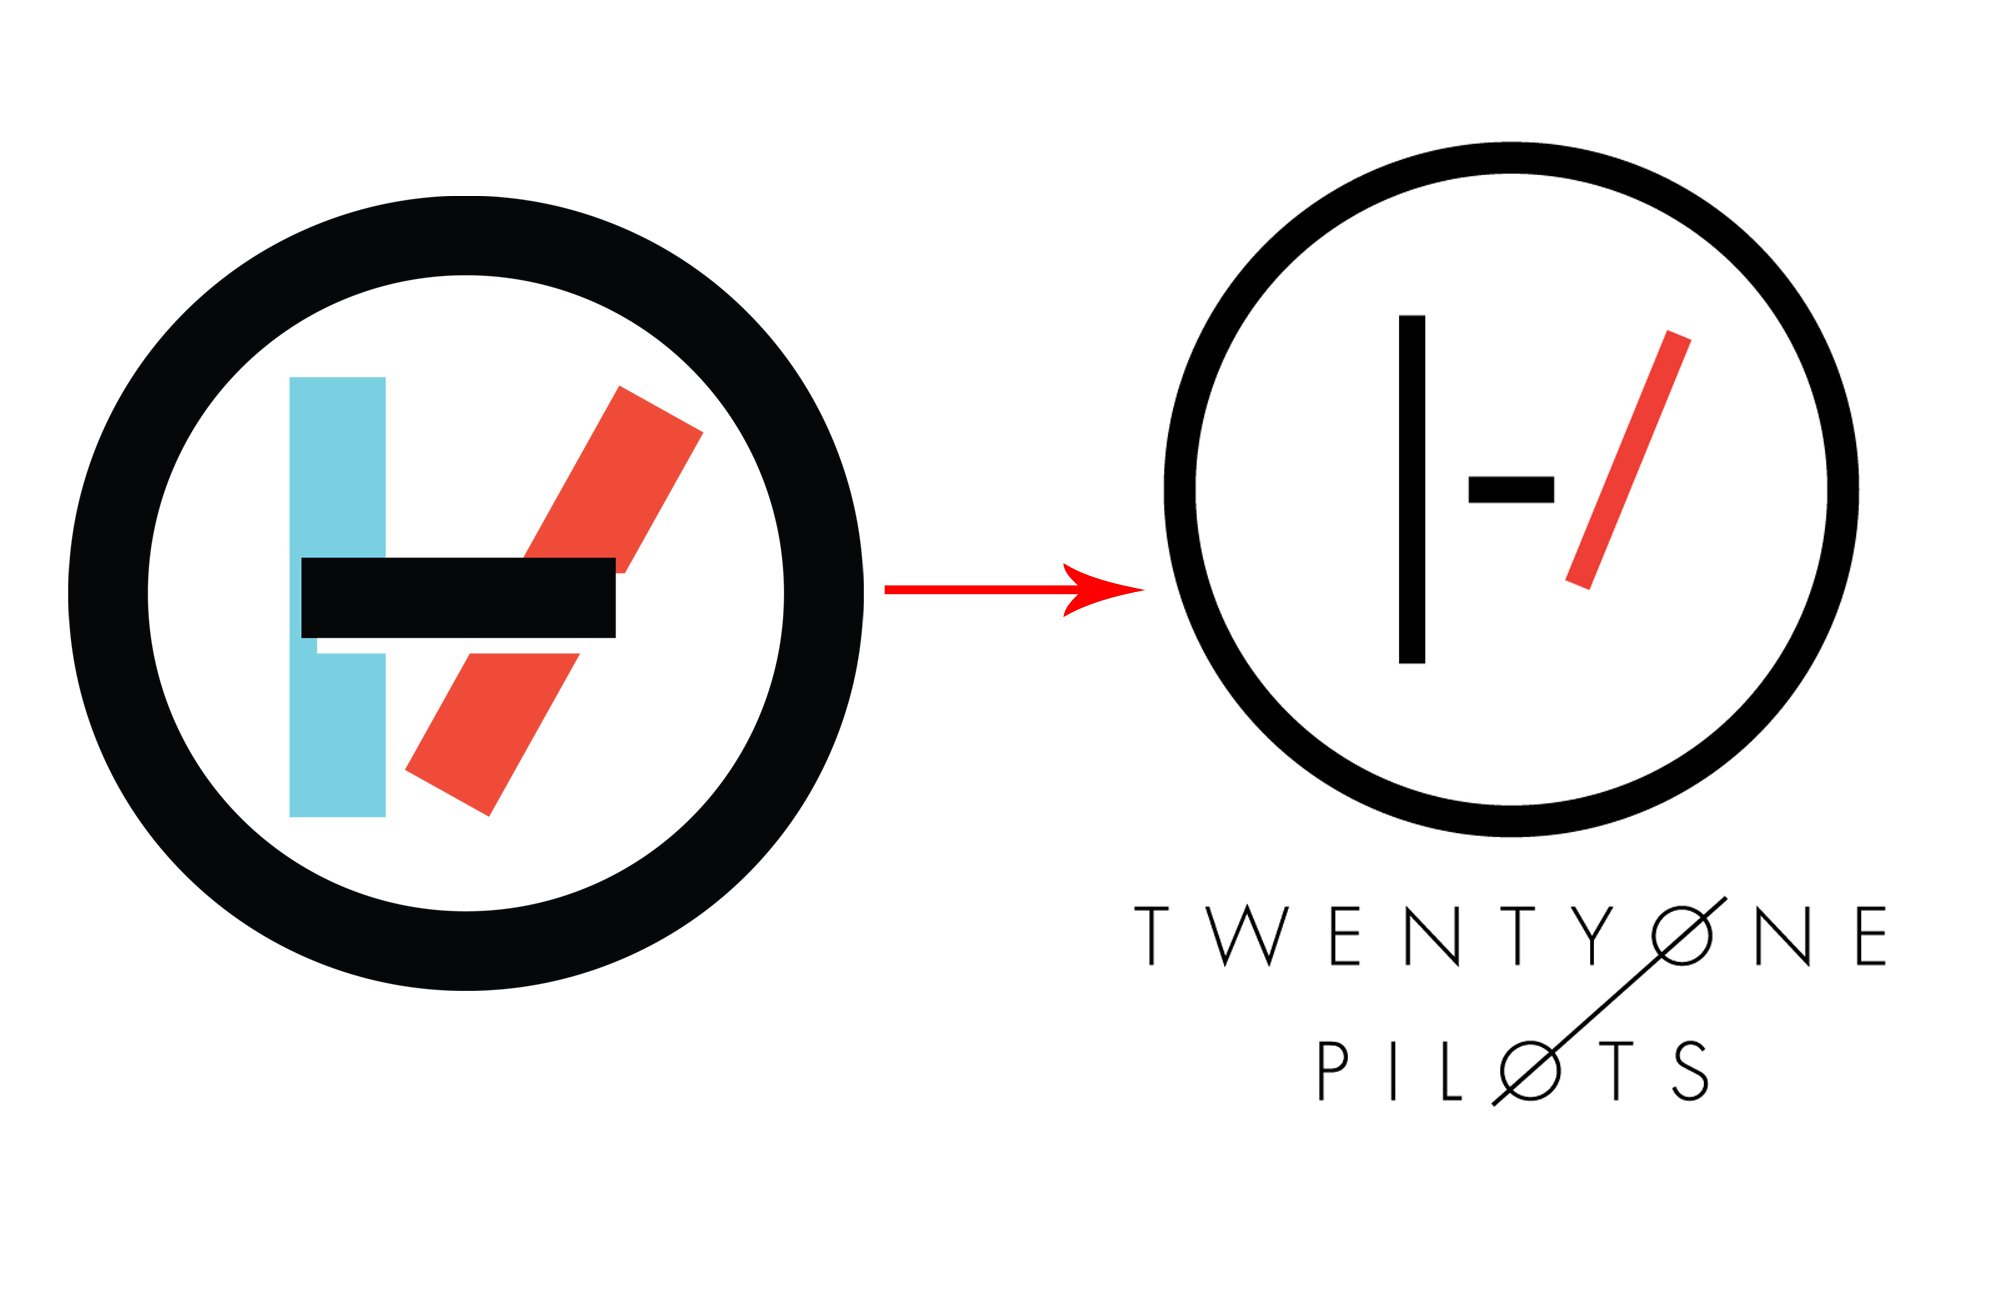 21 Pilots Logo 21 Pilots Symbol Meaning History And Evolution